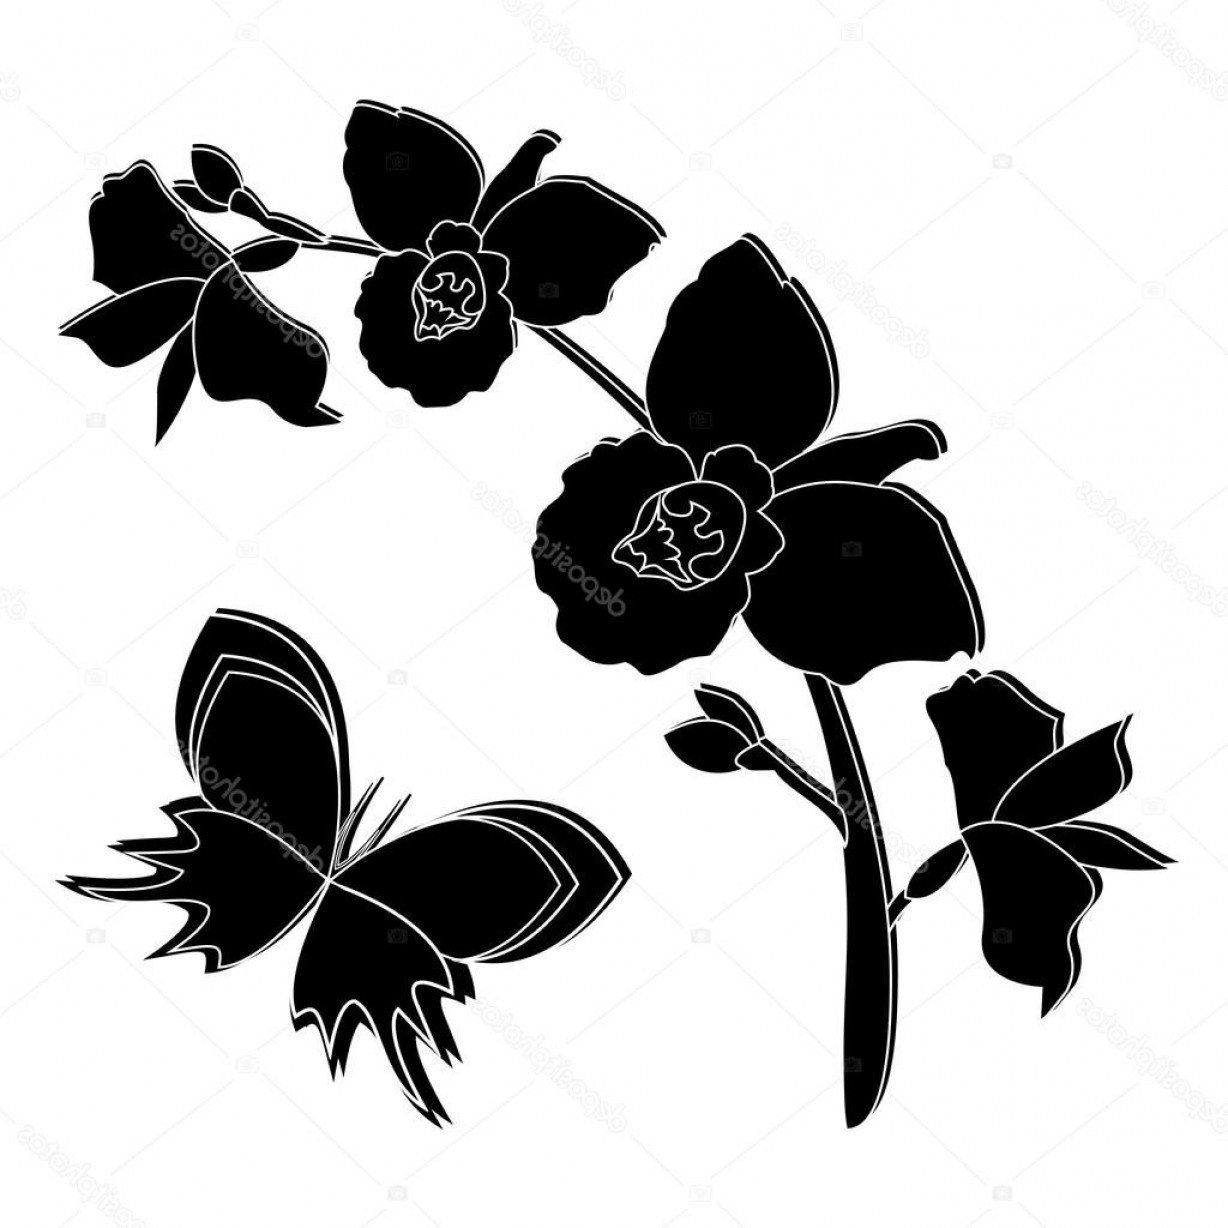 Butter Fly And Flower Vector Black And White: Stock Illustration Black Silhouette Of Orchid Flowers